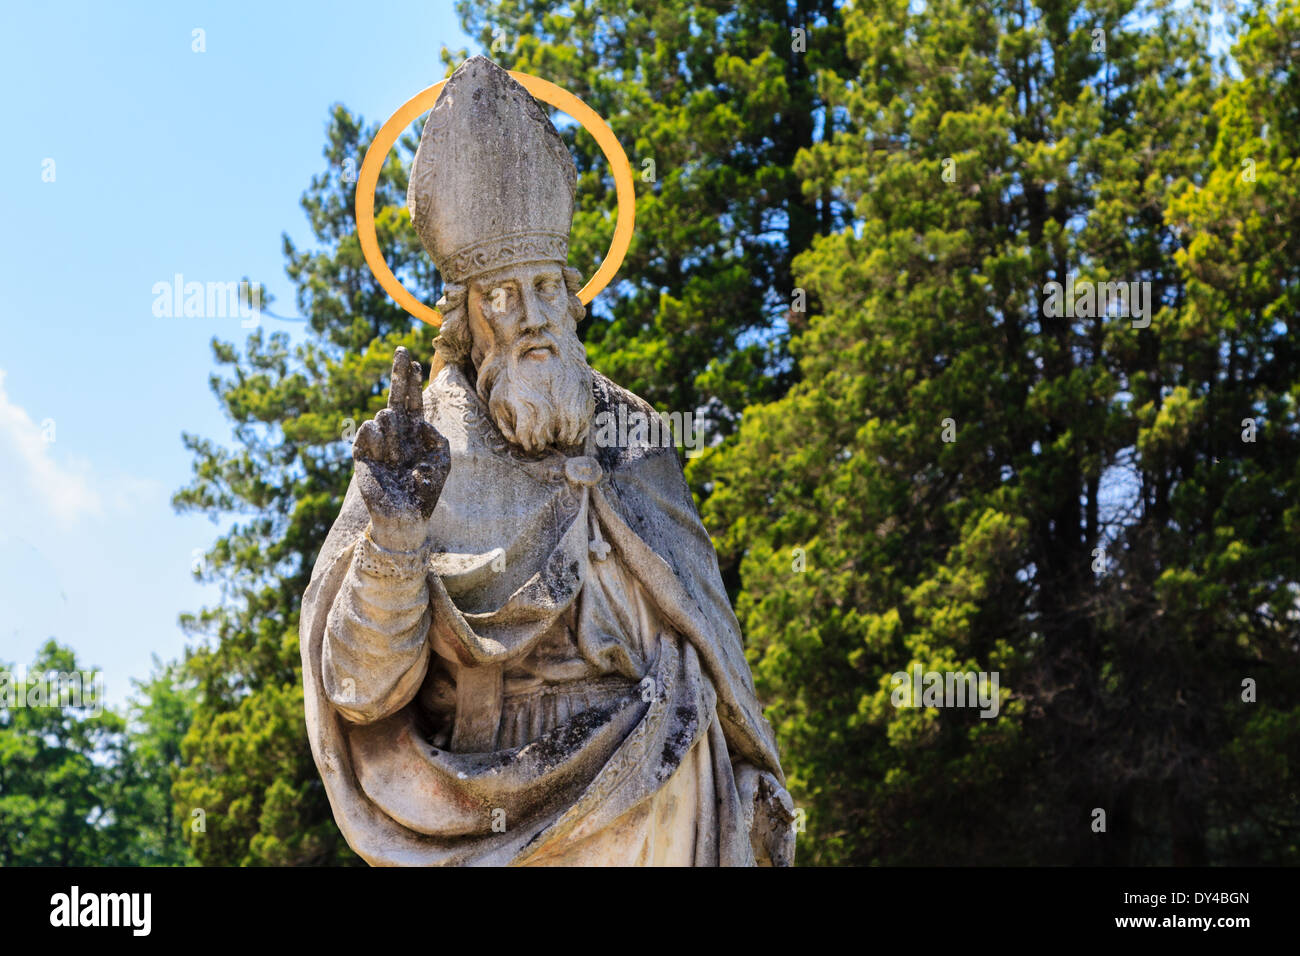 A stone statue of a saint outdoor with a bishop's hat and typical hand gesture - Stock Image